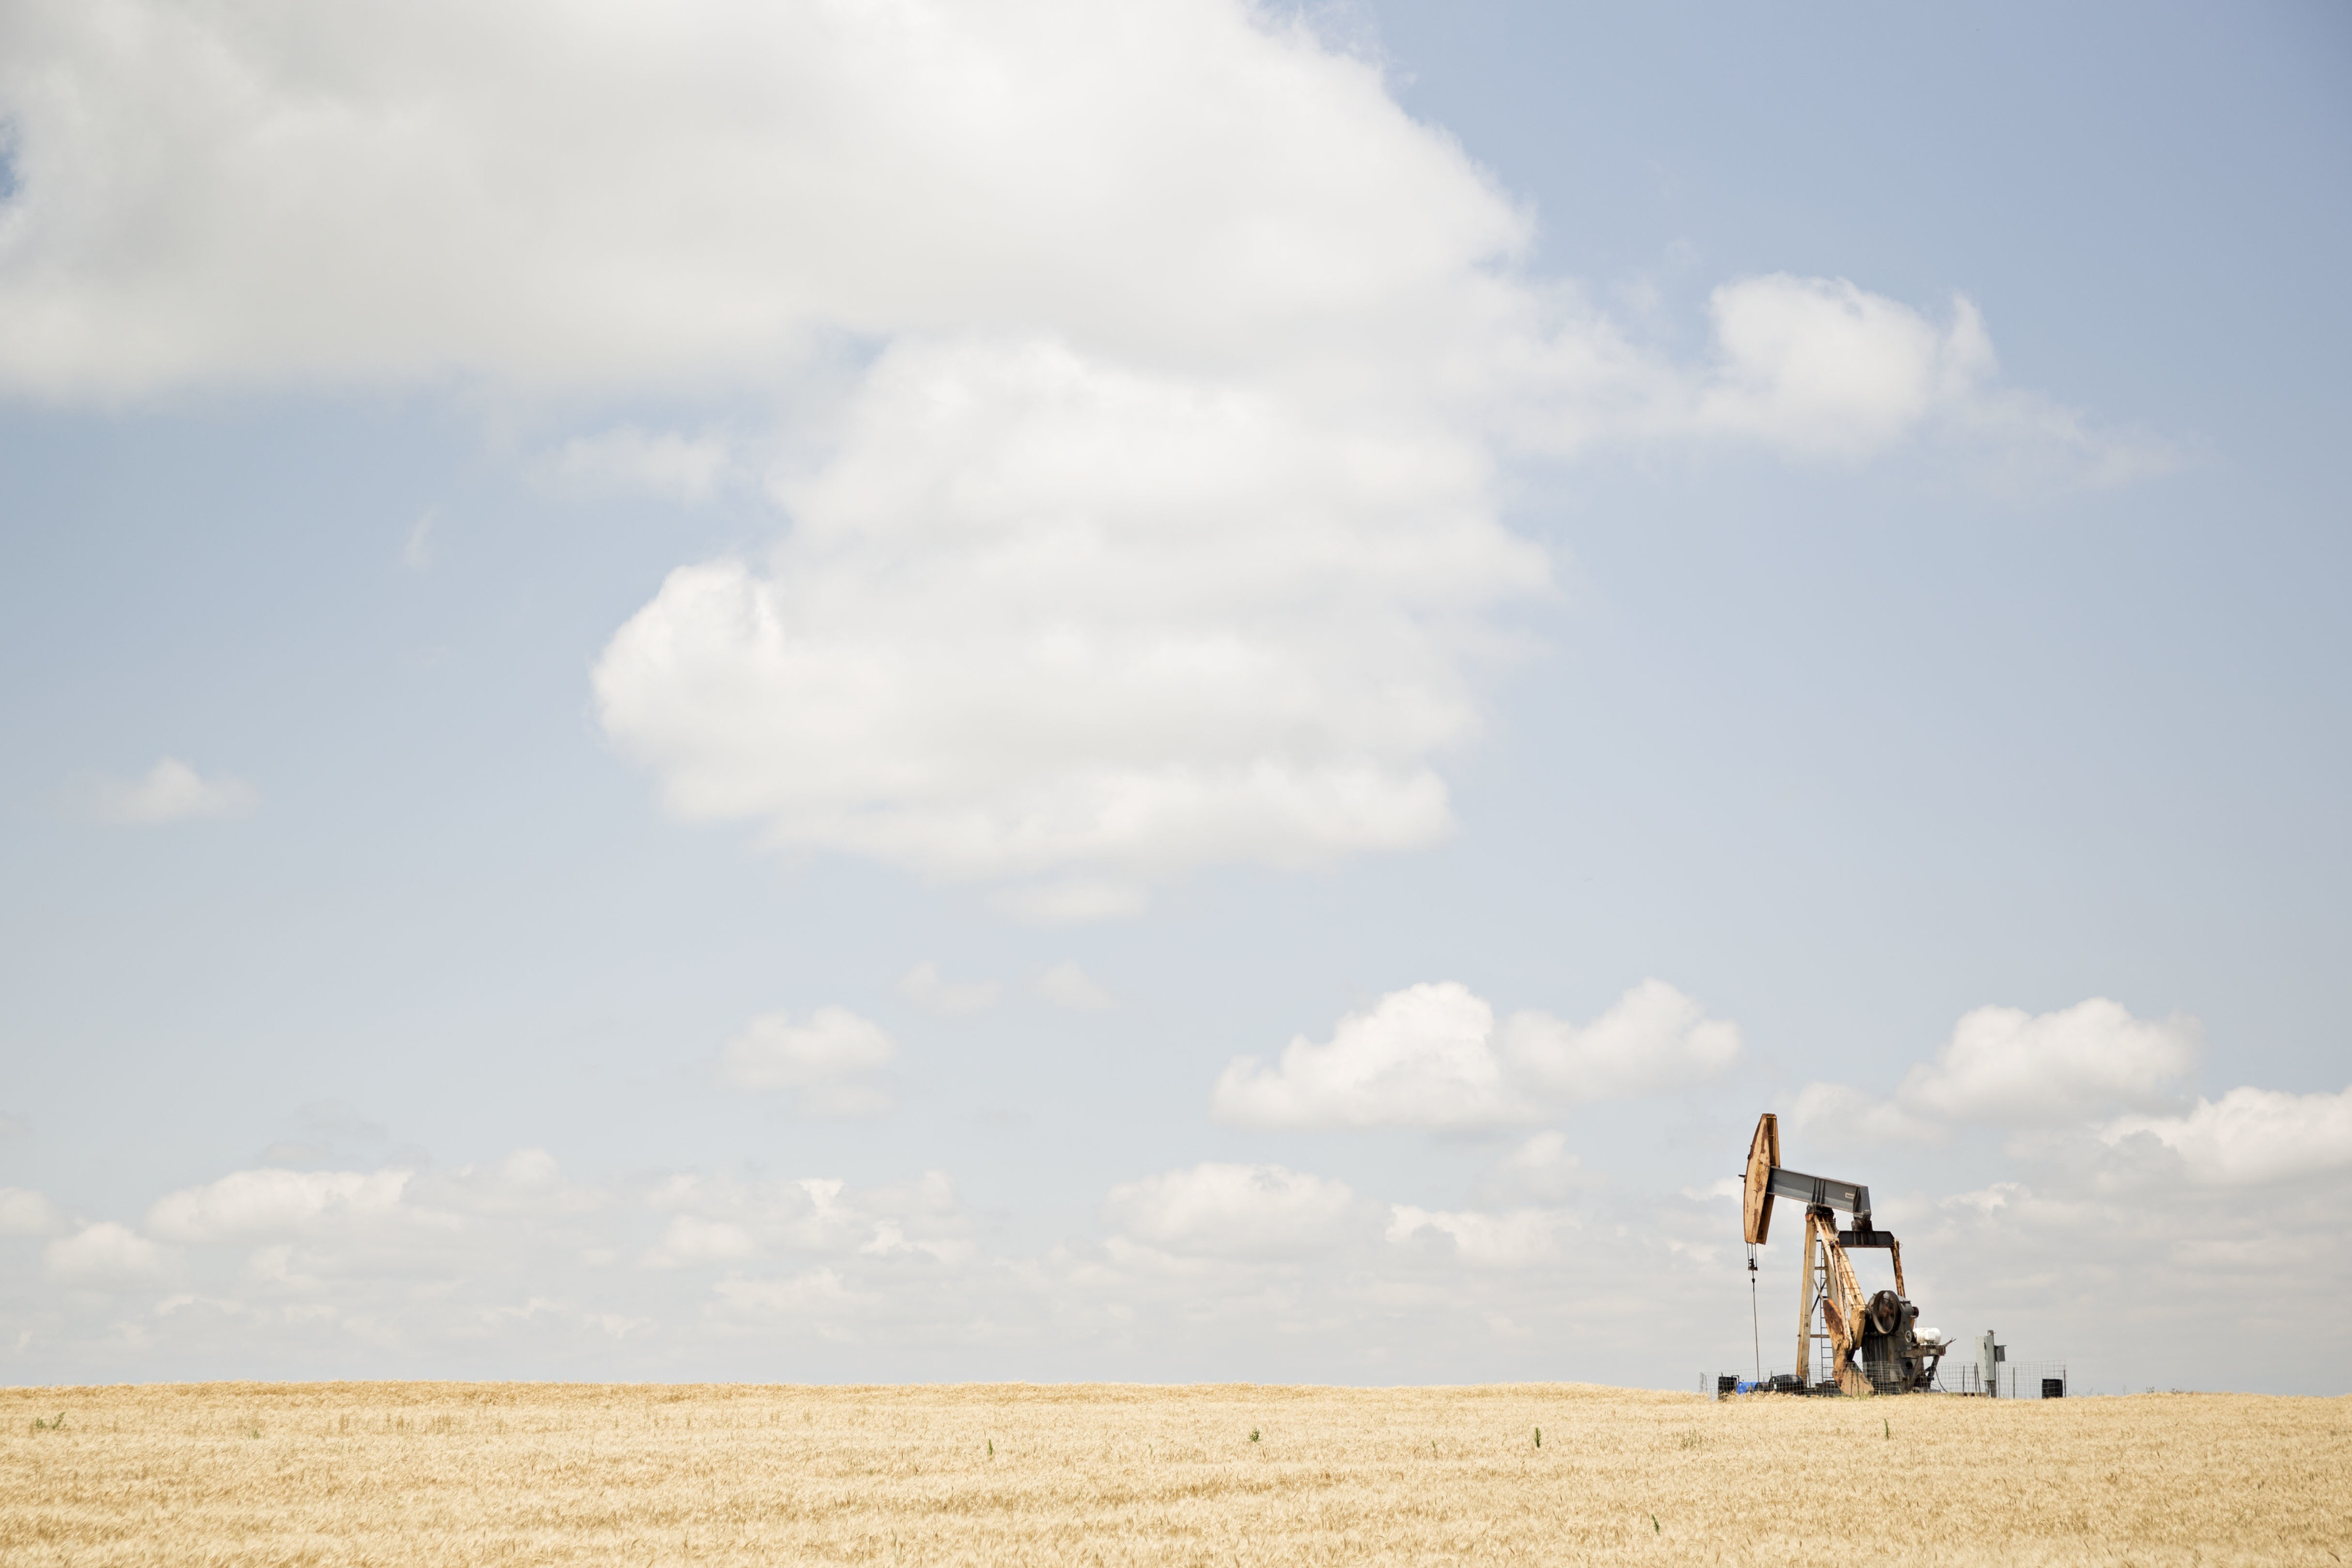 A pumpjack operates in the Bemis-Shutts oil field near Hays, Kansas, U.S., on Thursday, June 29, 2017. Photographer: Daniel Acker/Bloomberg